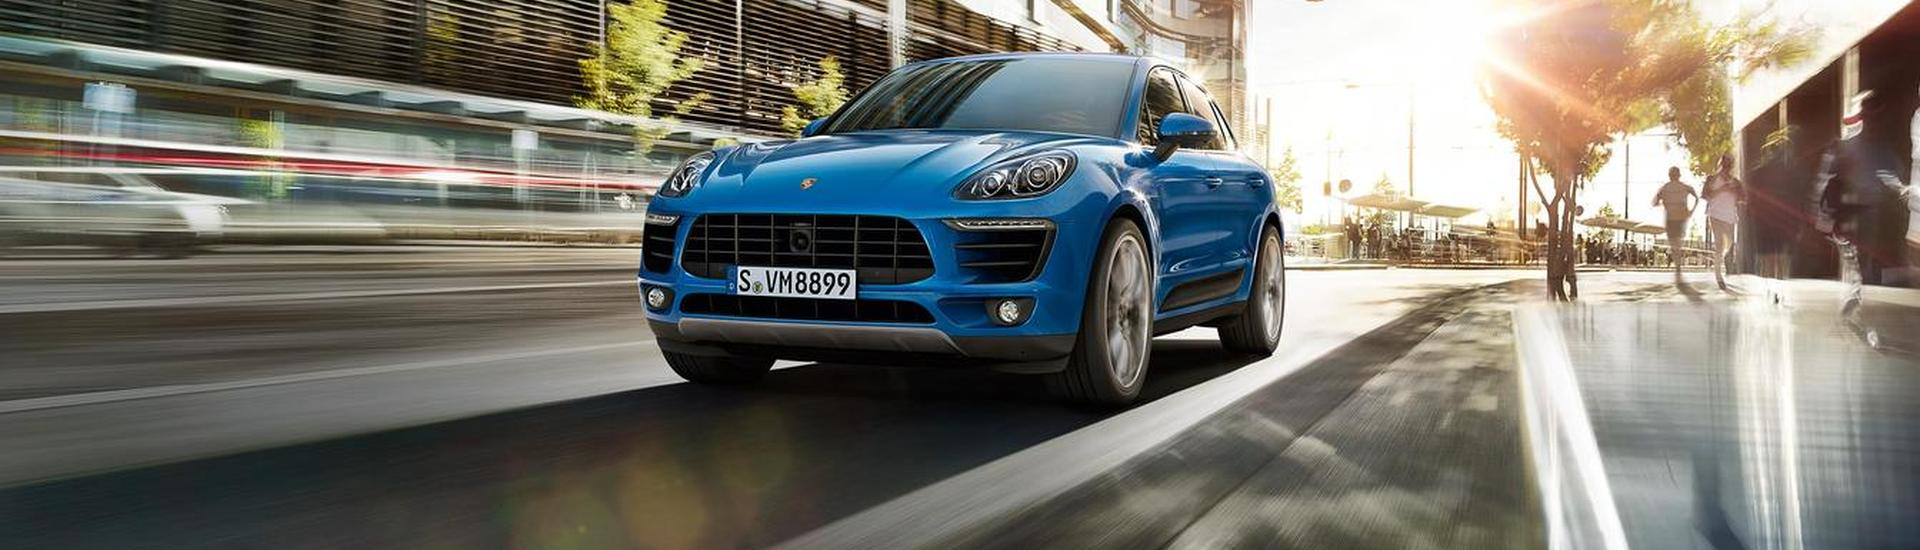 Porsche Approved Vehicle Pre-Owned Cars - Premium Used Cars ...